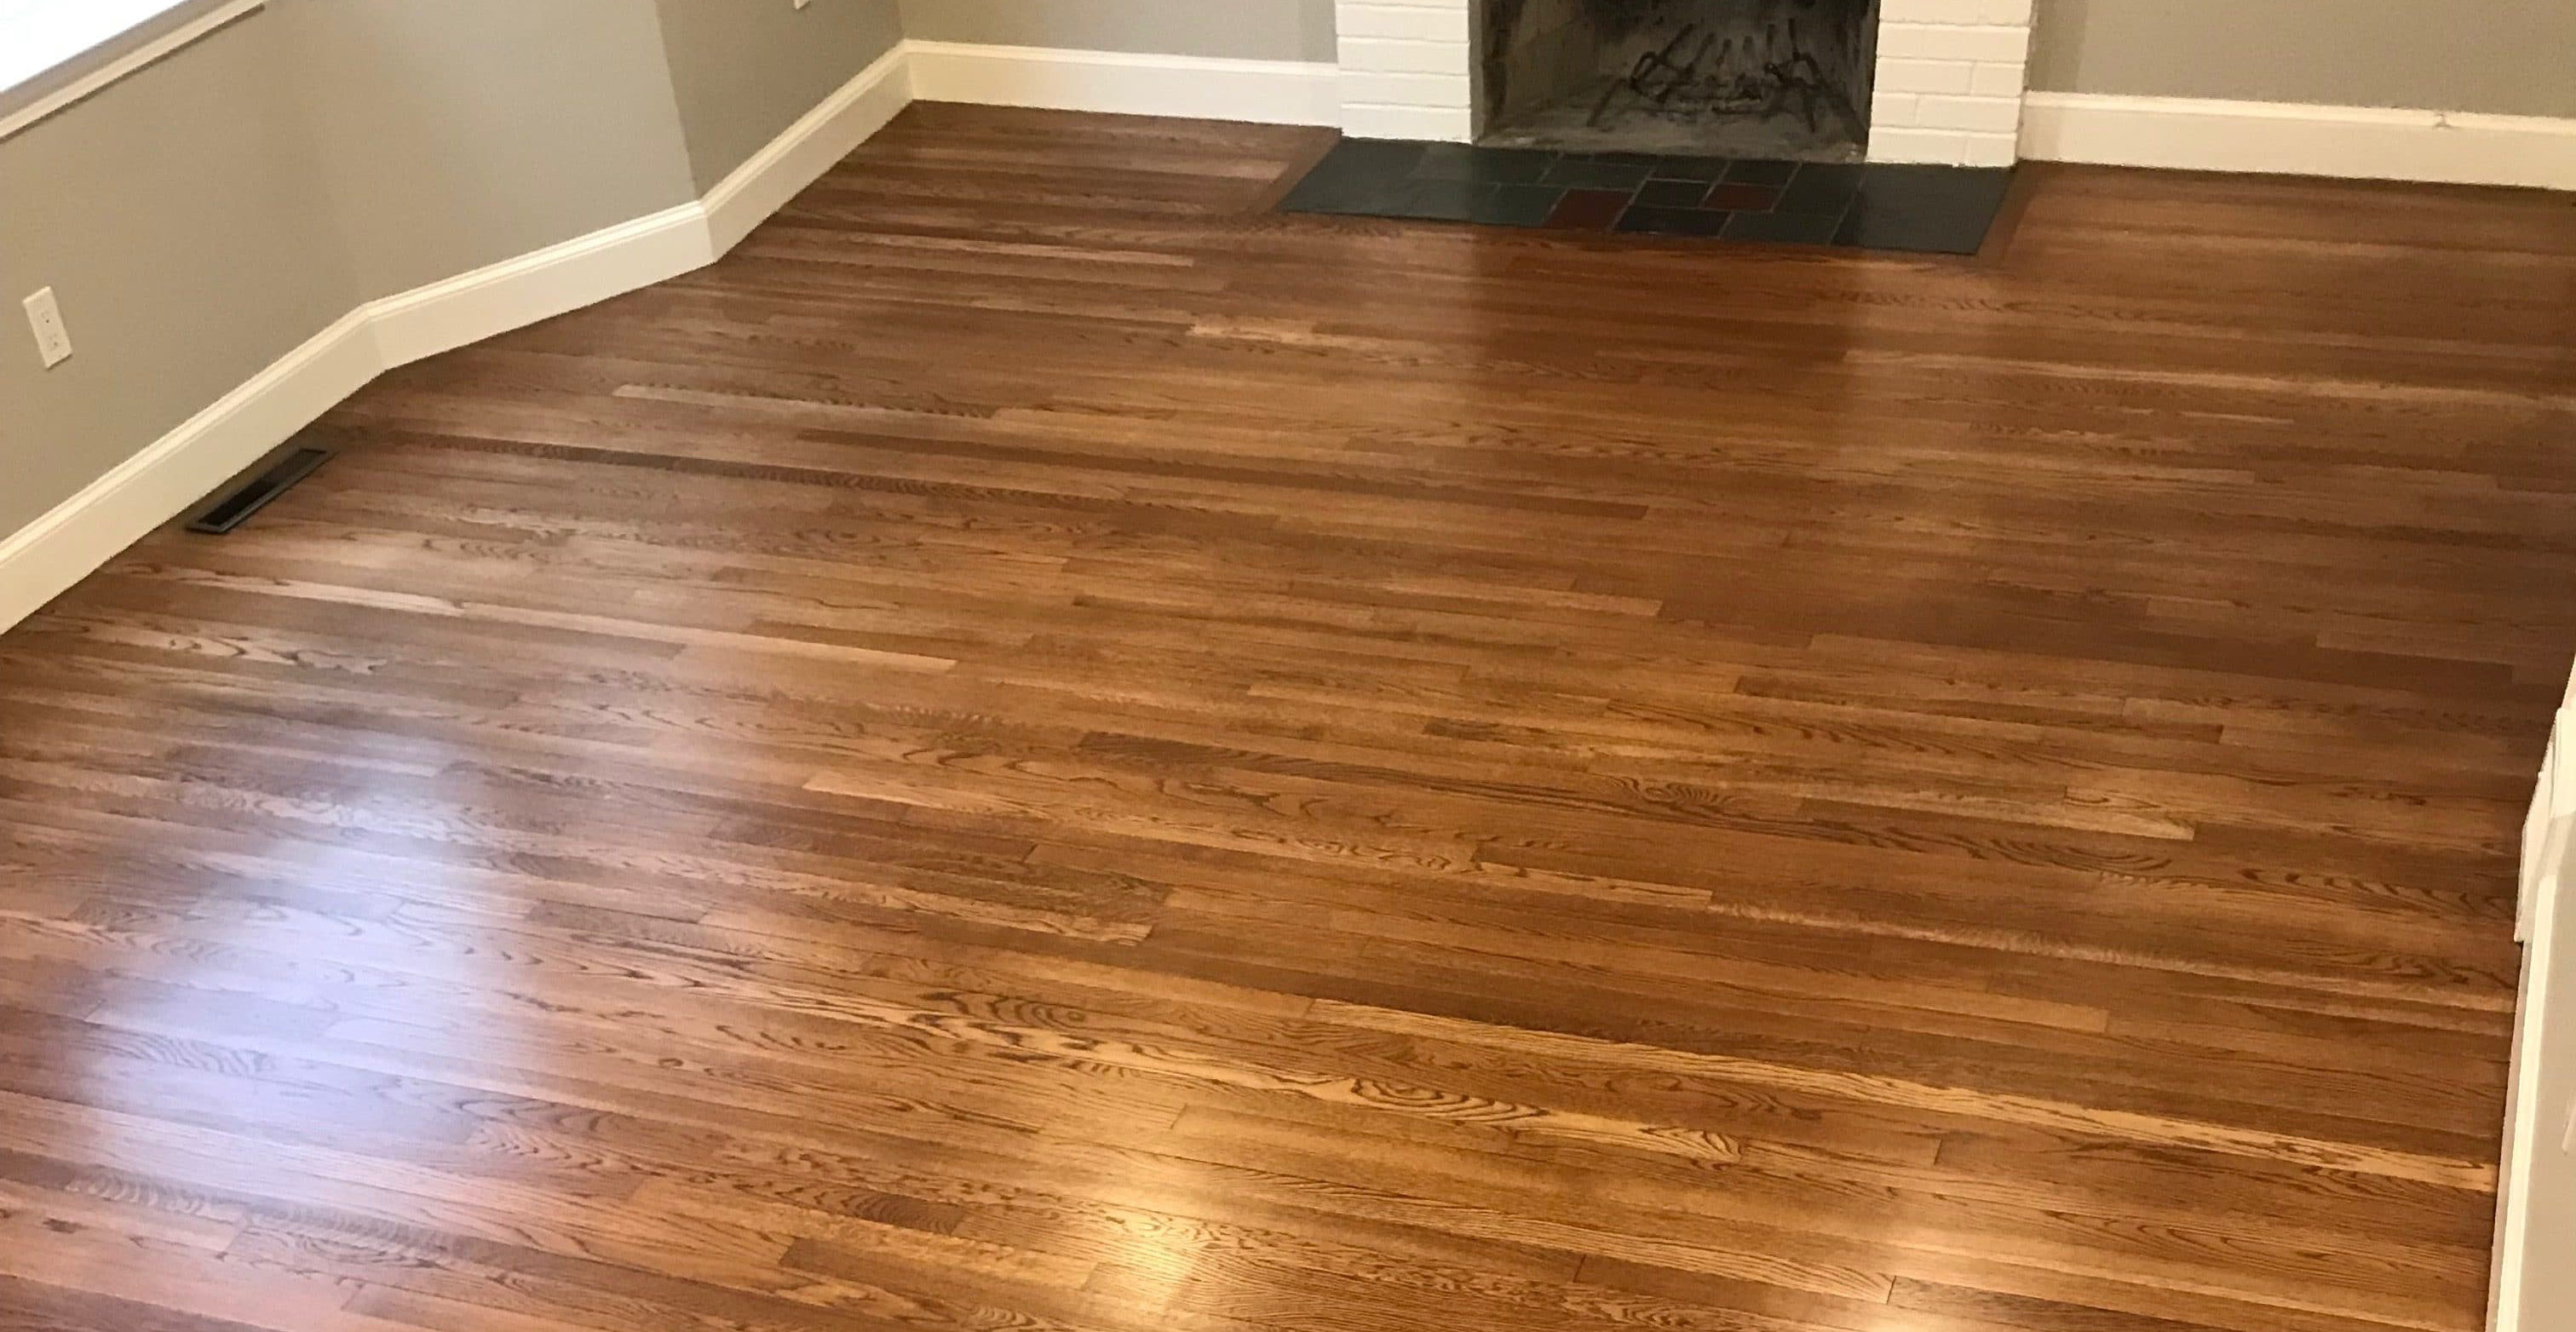 Should you do your own hardwood floors?